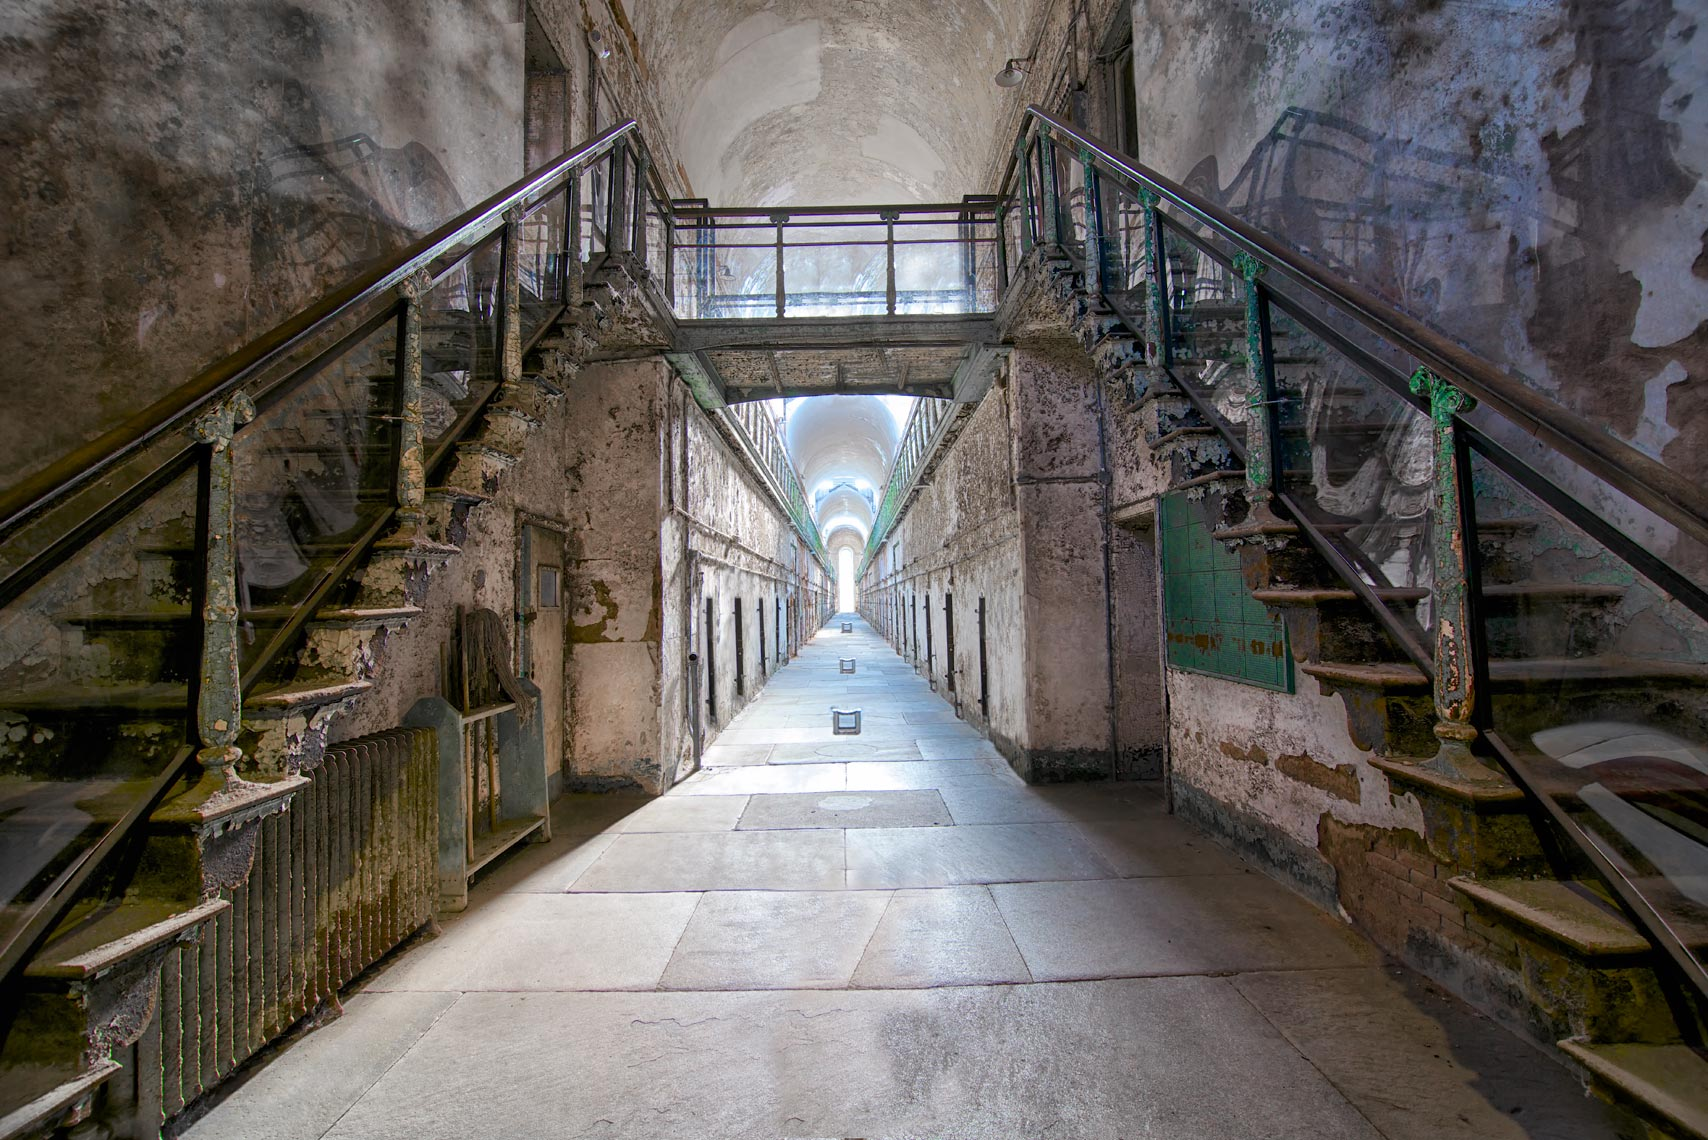 eastern state penitentiary stairway stairs hallway prison cells locker rooms prison house grey green blue black